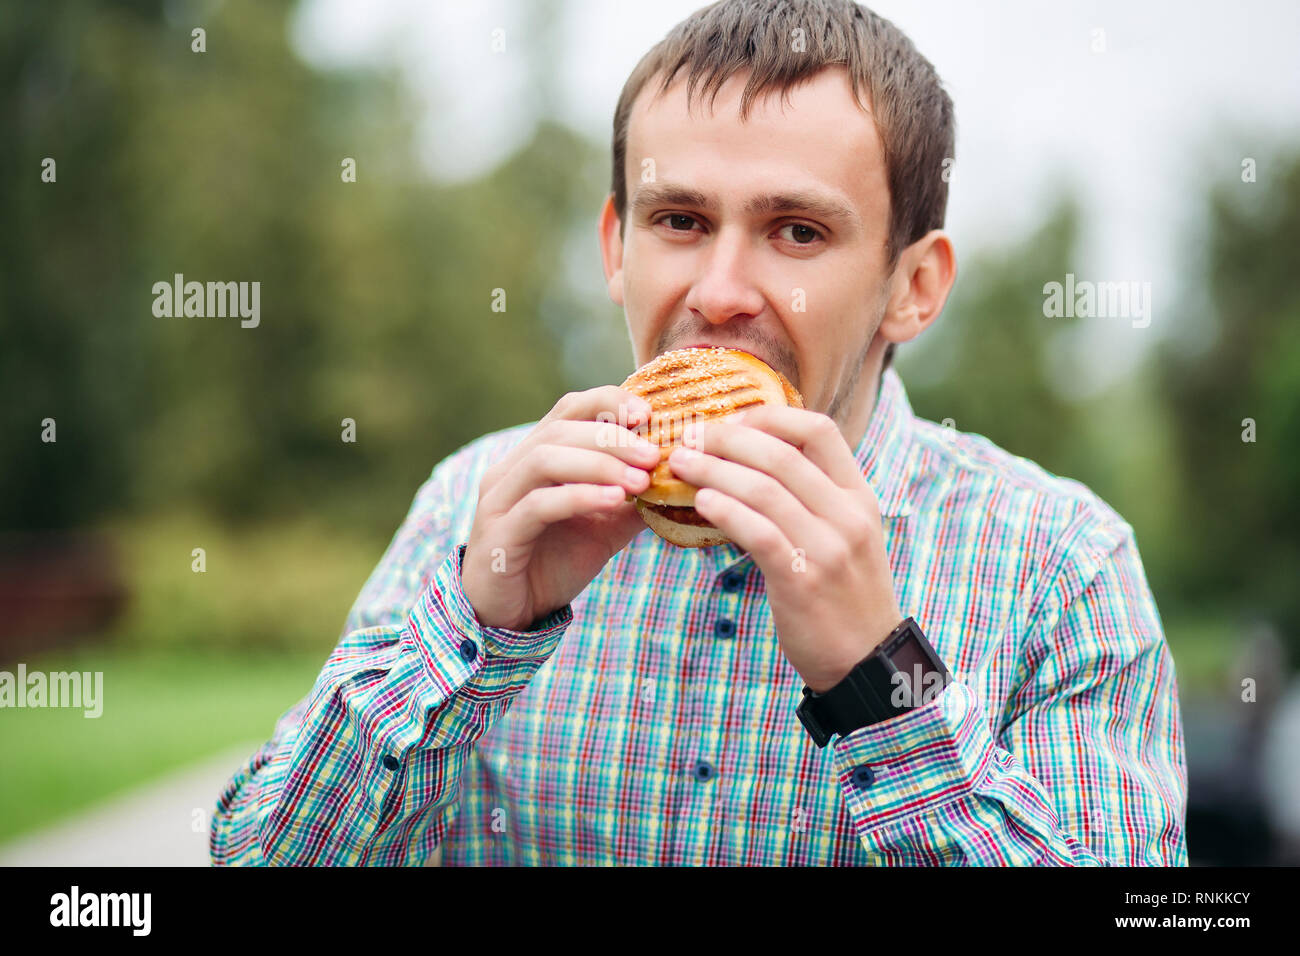 Man in checked shirt eating tasty burger outdoors. - Stock Image